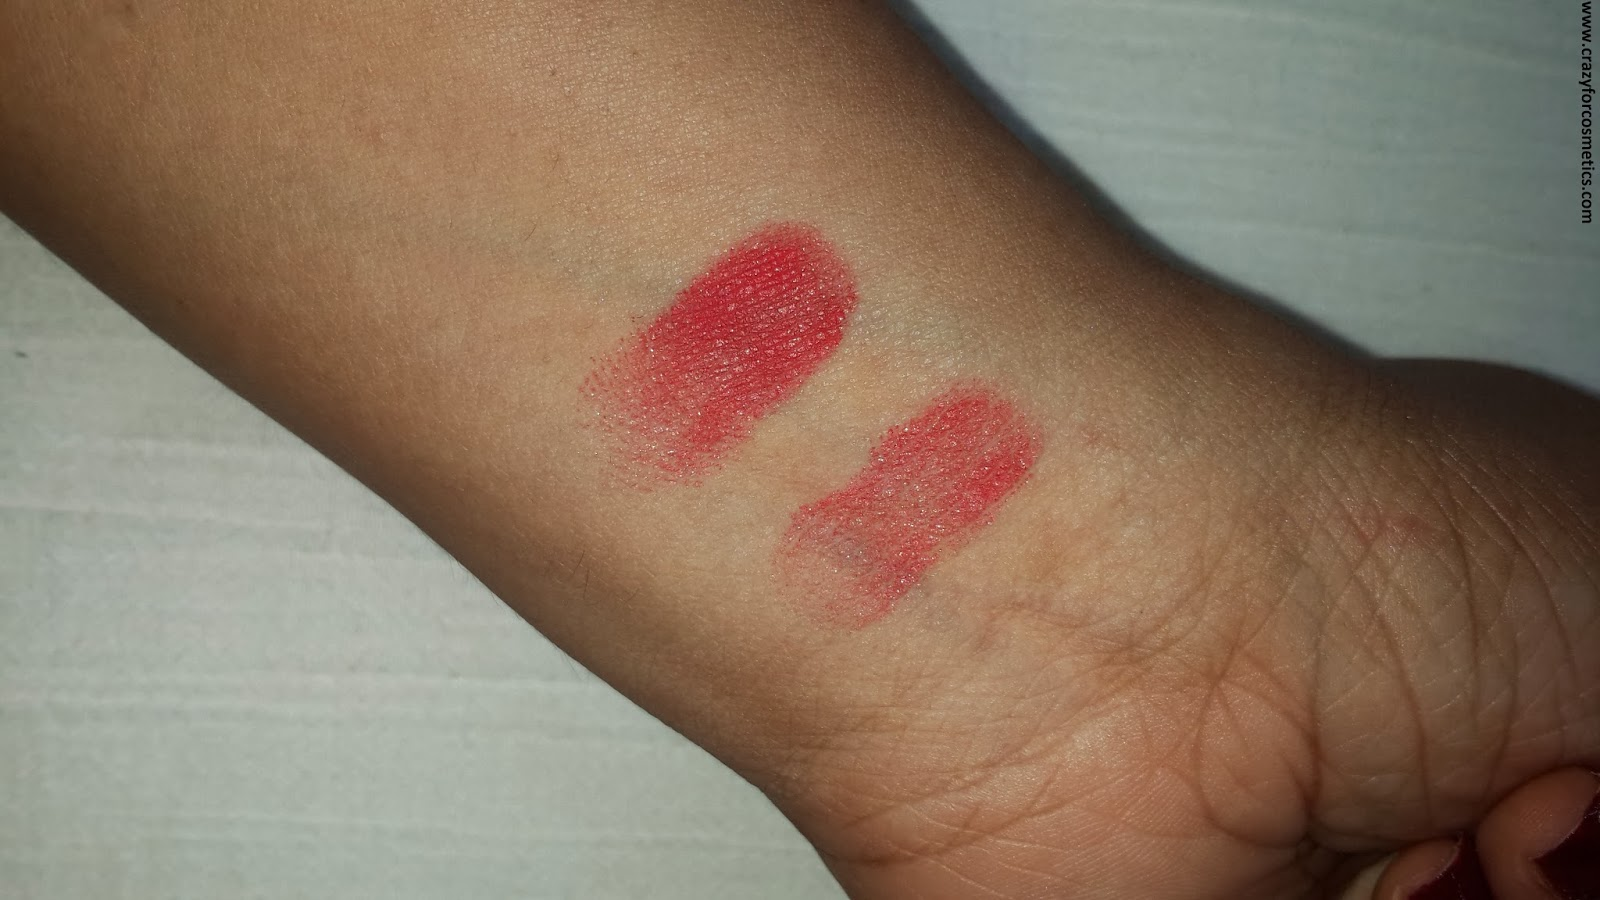 NYX Cosmetics Single Eyeshadow Sunrise swatch under flash light